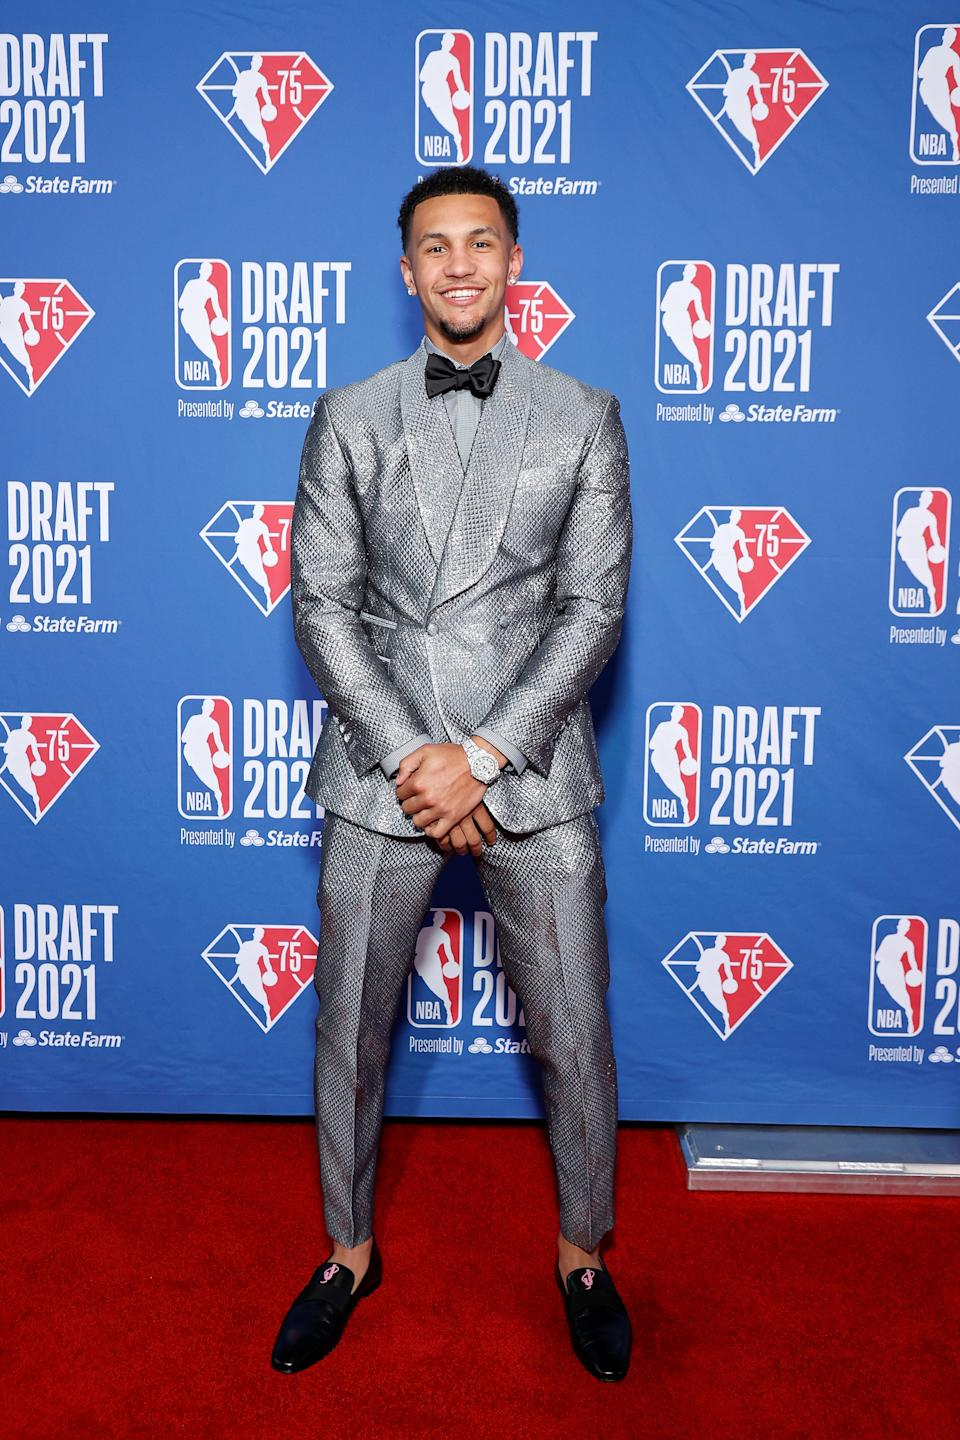 Jalen Suggs poses for photos on the red carpet during the 2021 NBA draft at the Barclays Center on July 29, 2021 in New York City. (Arturo Holmes/Getty Images)